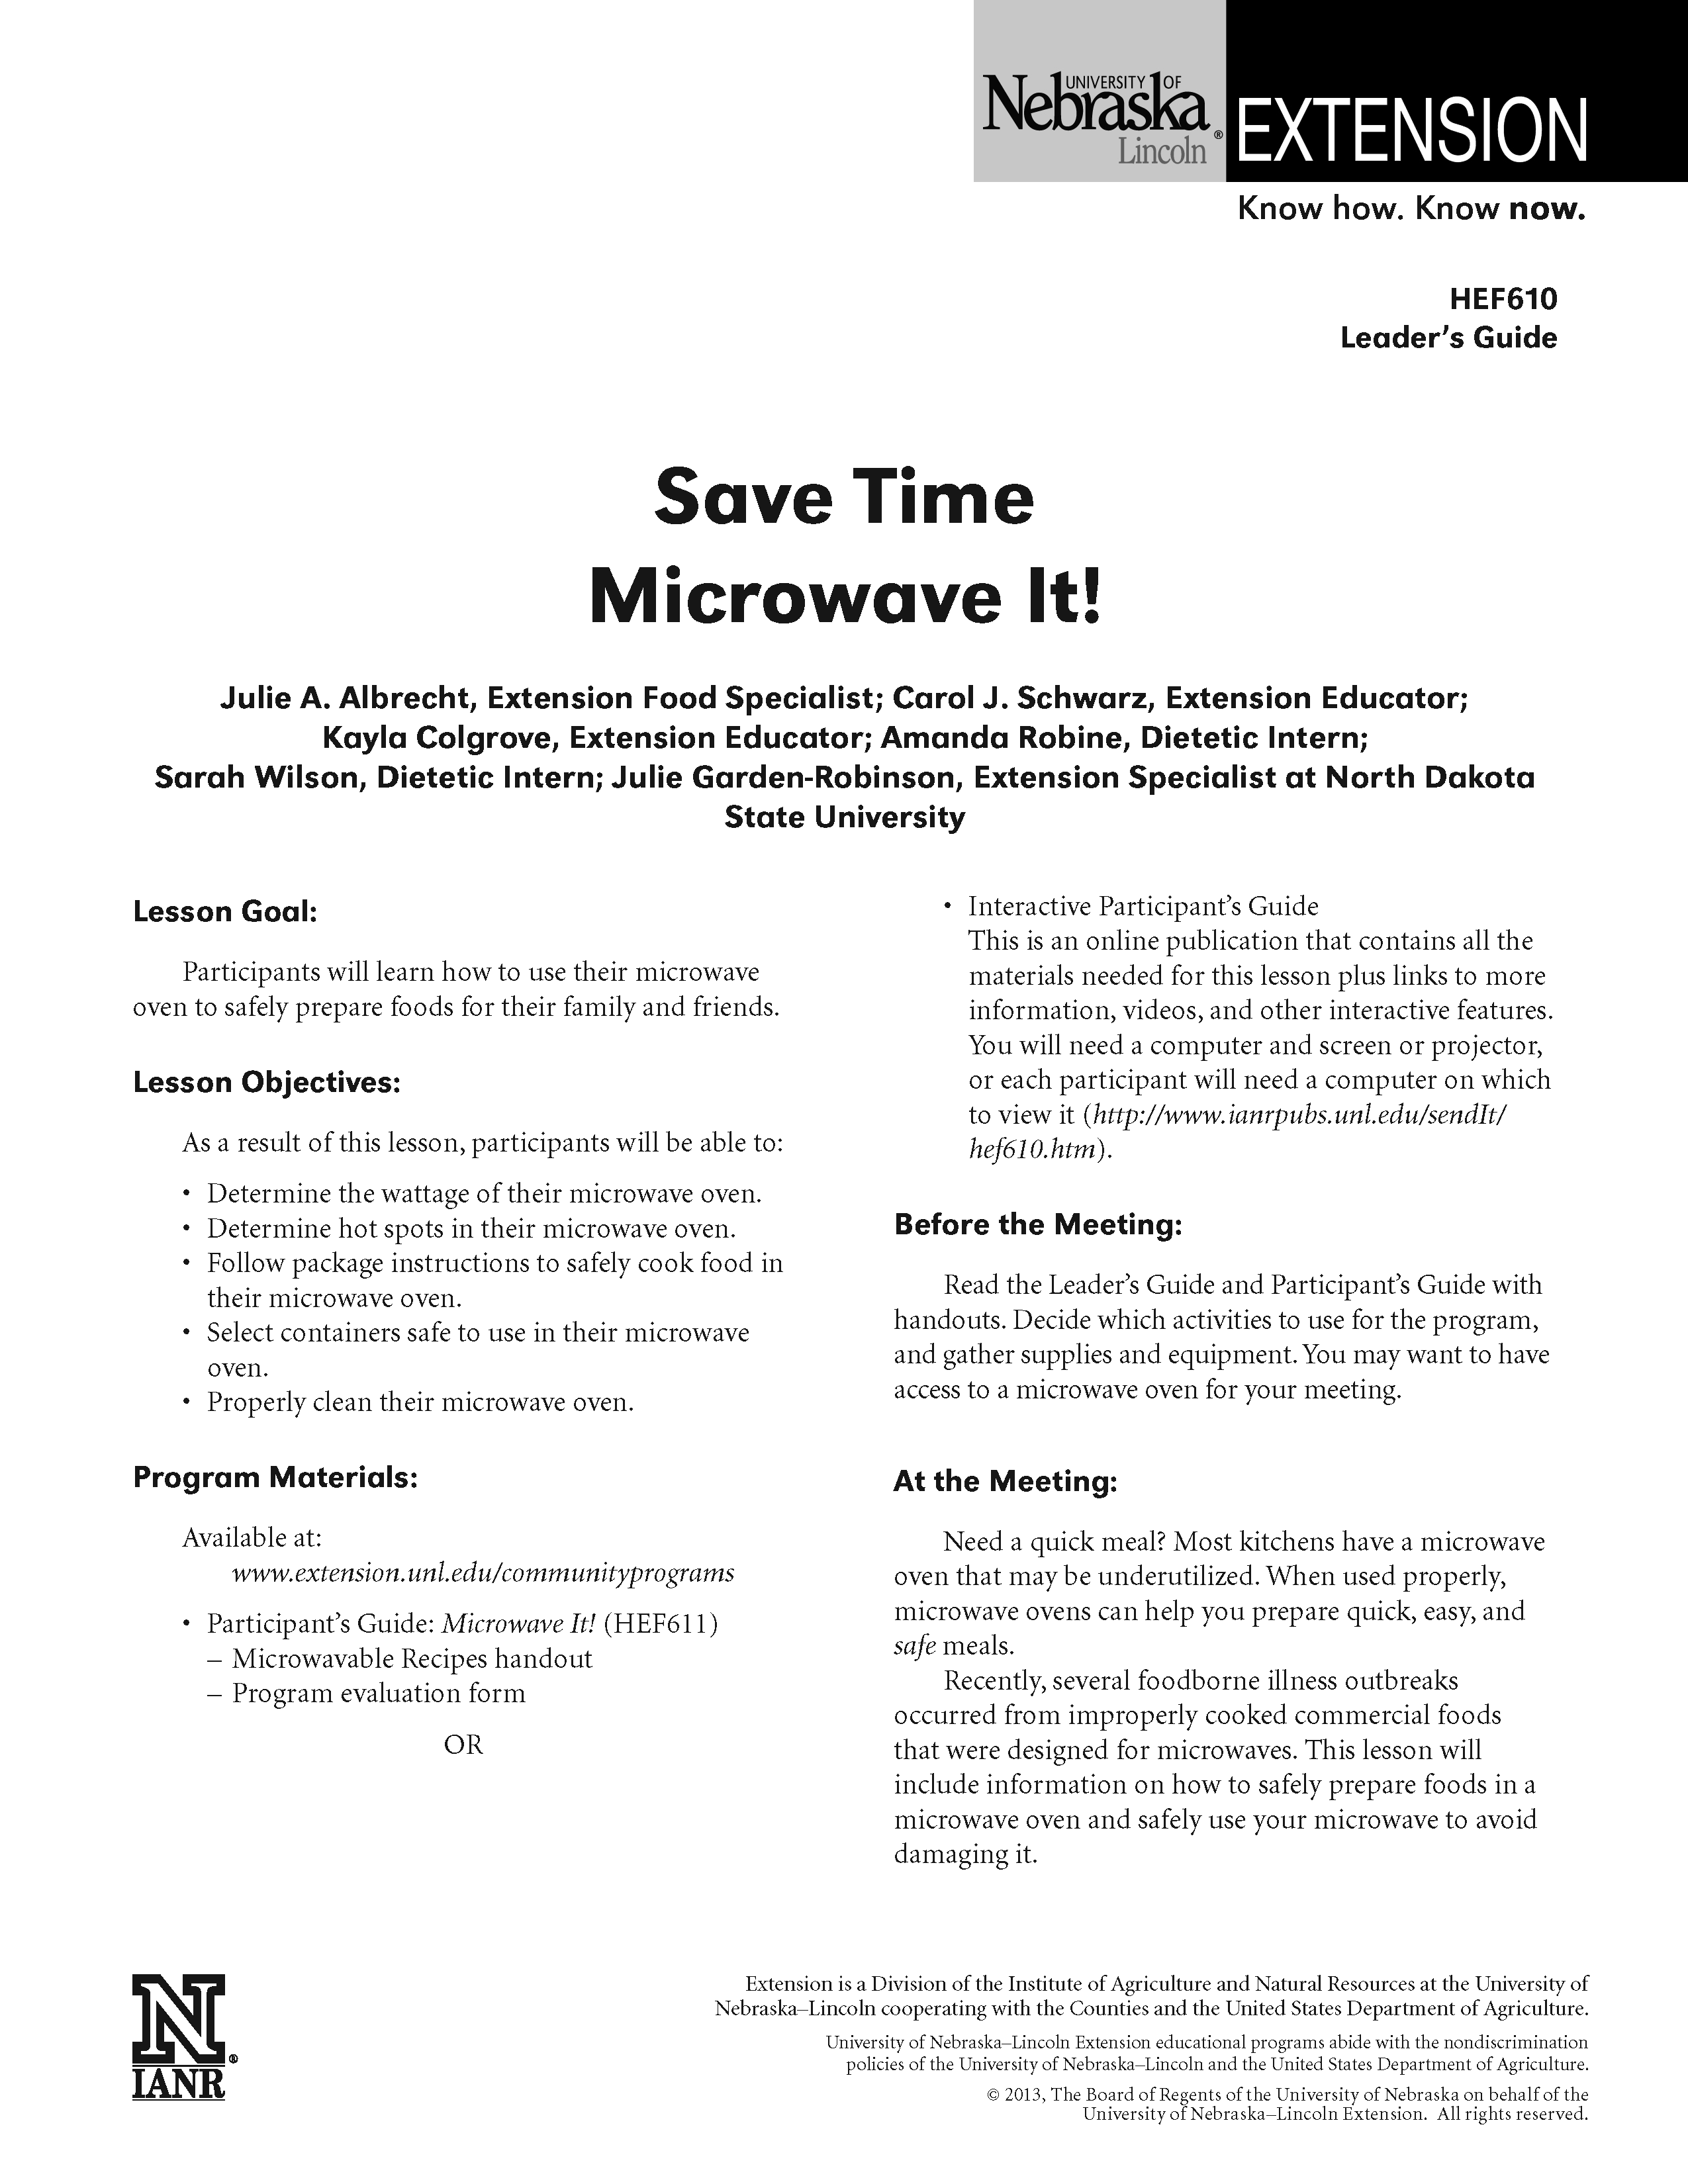 Microwave It! Leader's Guide